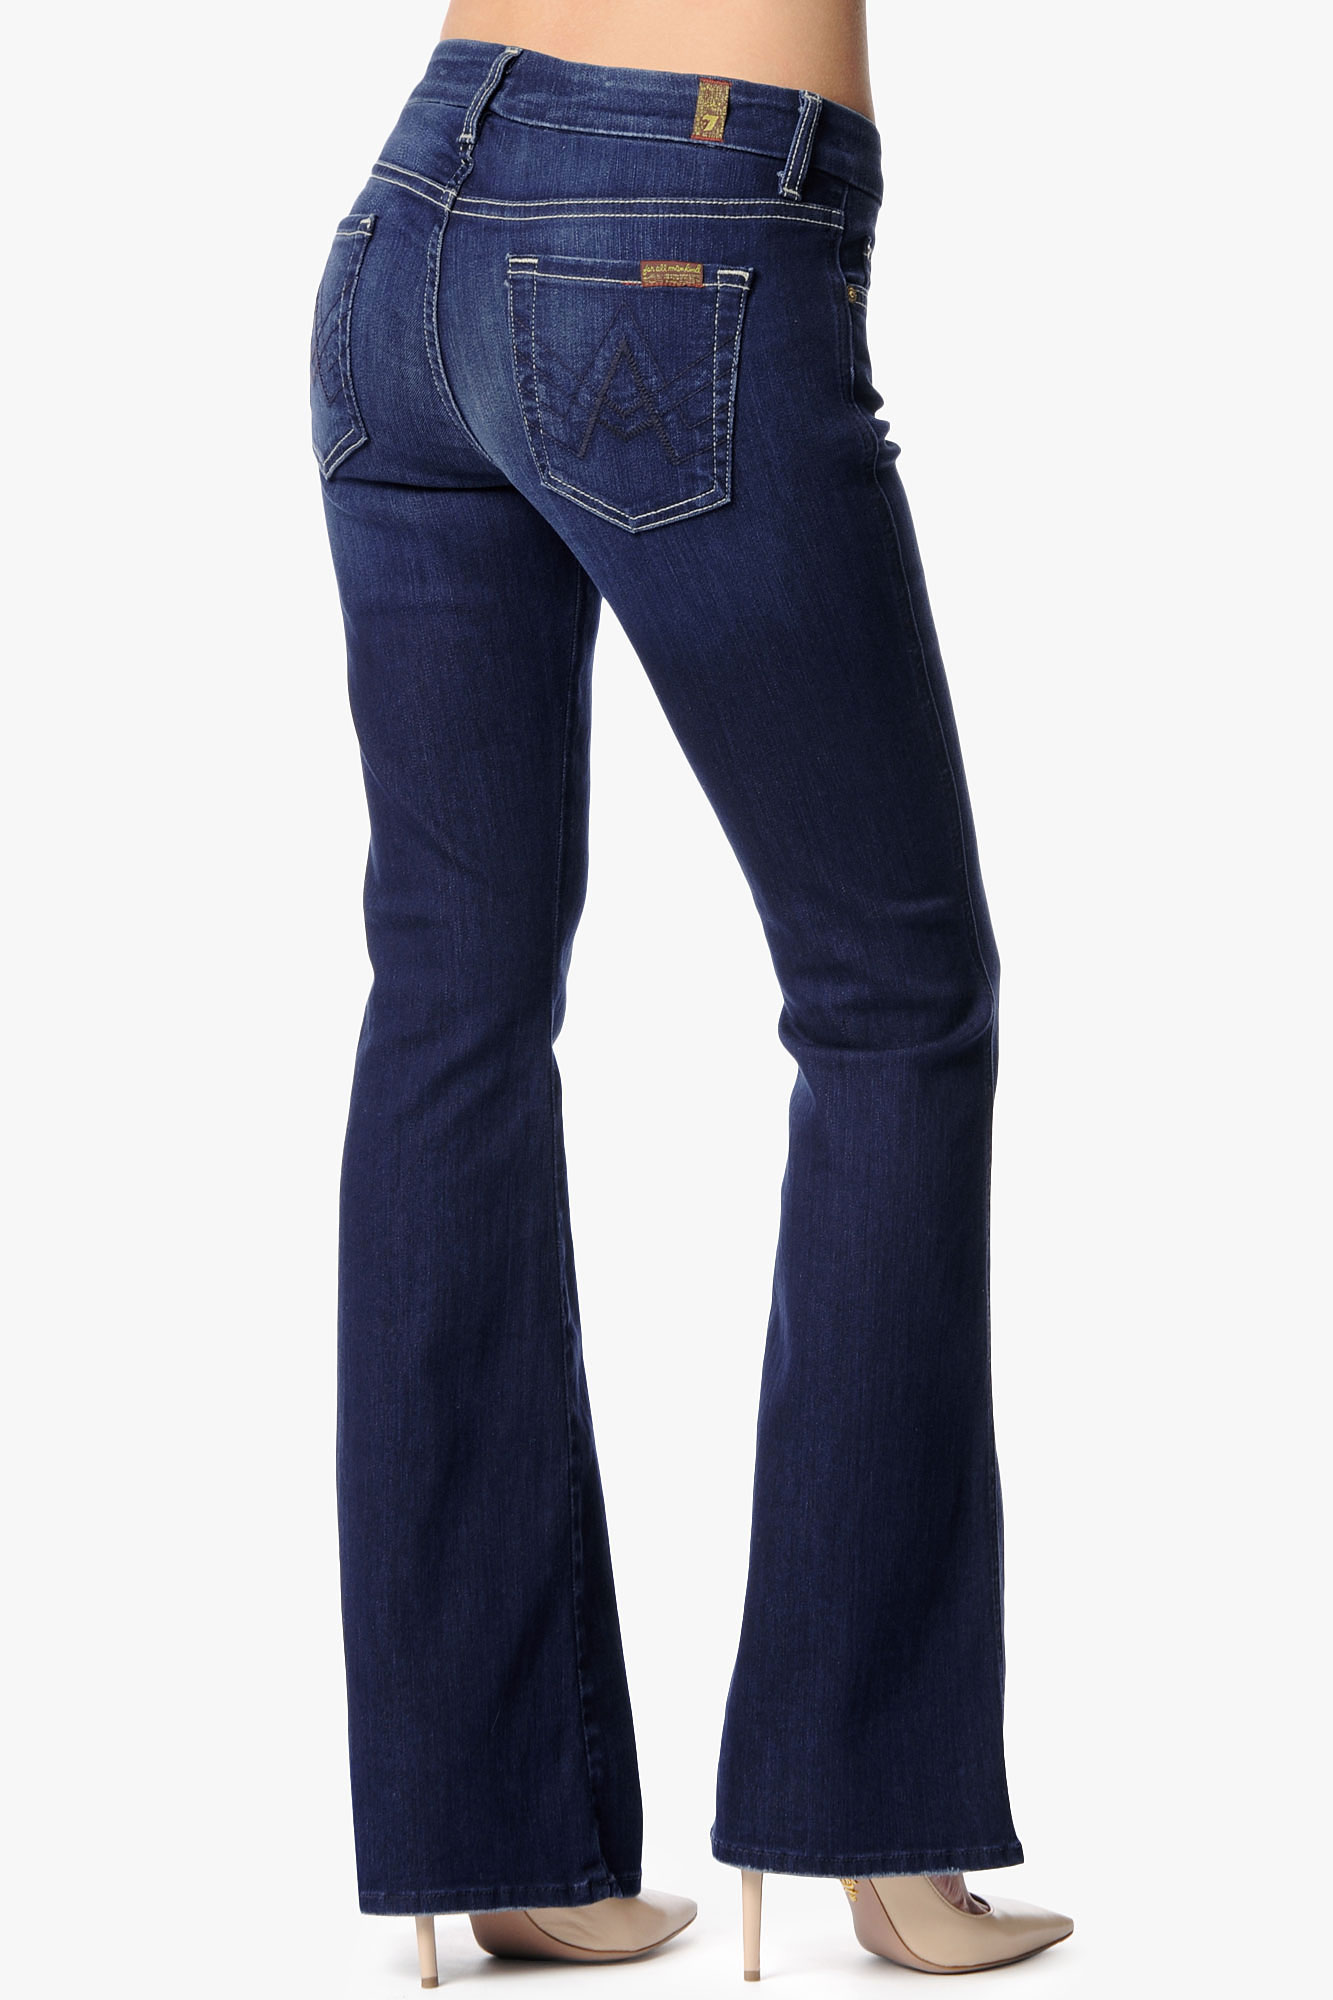 7 for all mankind Lexie Petite A-Pocket Flare in Blue | Lyst